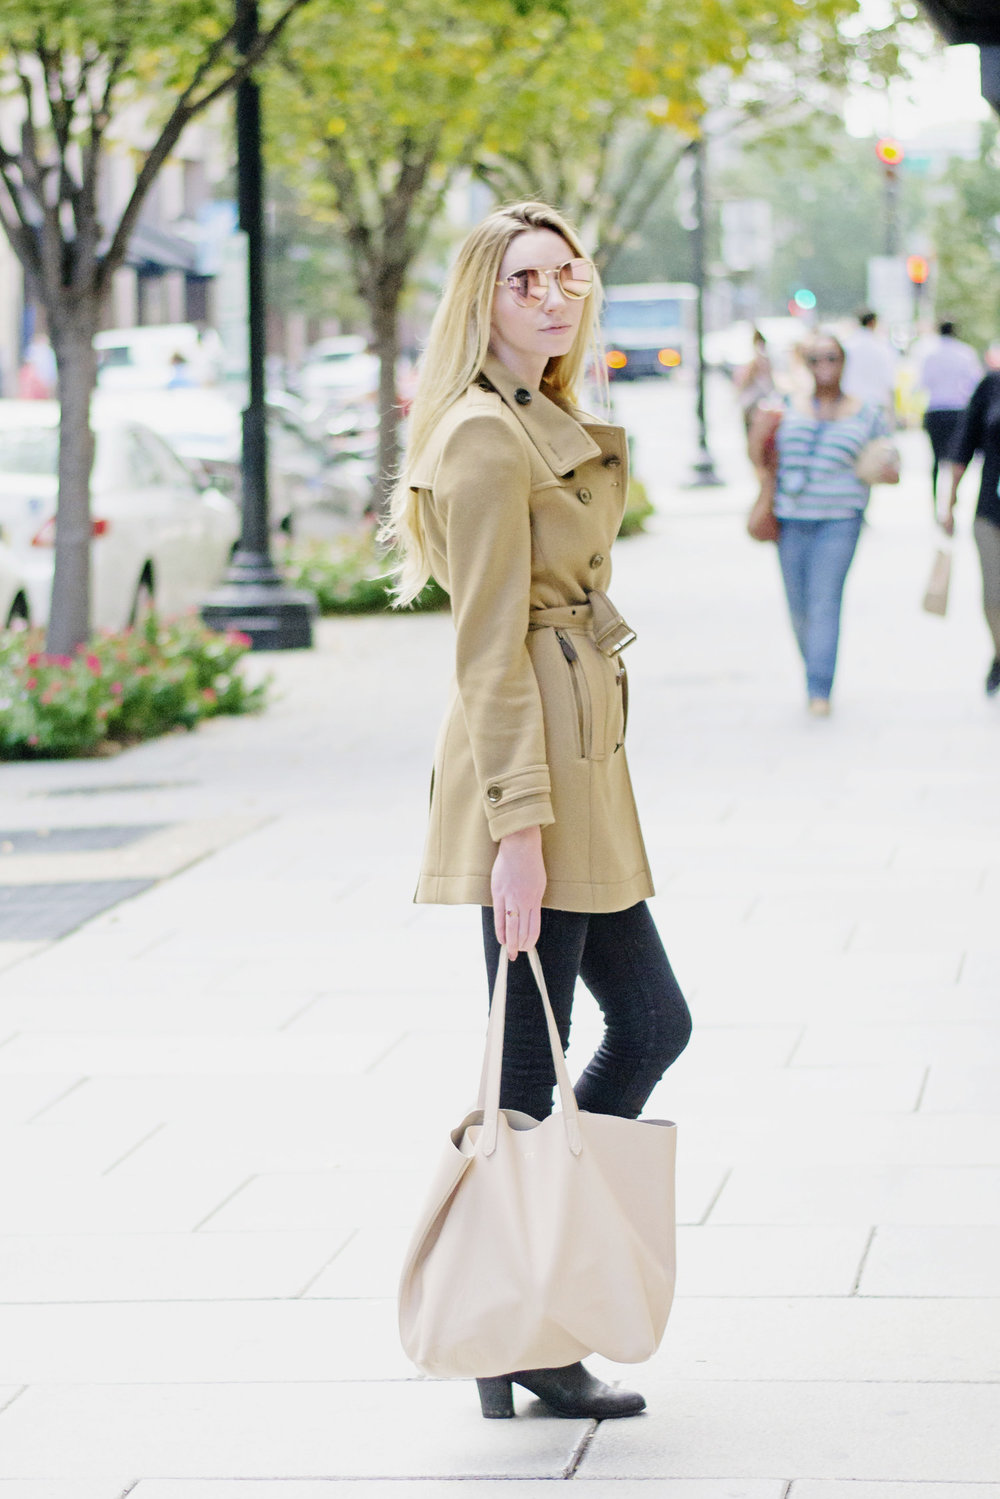 Blogger Fall Camel Coat (via Chic Now)